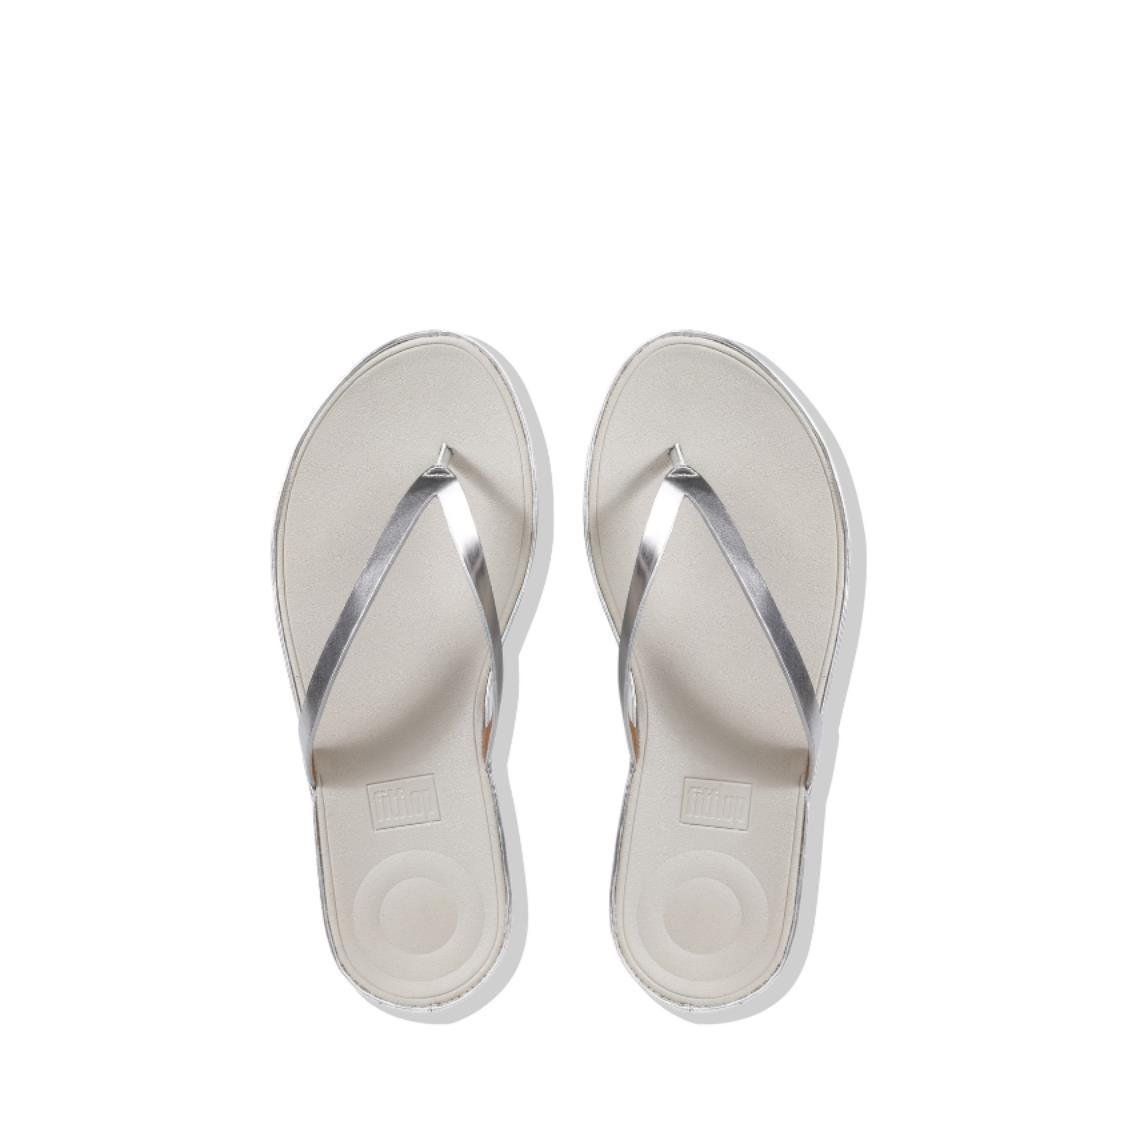 Linny Mirror Toe-Thong Sandals Silver